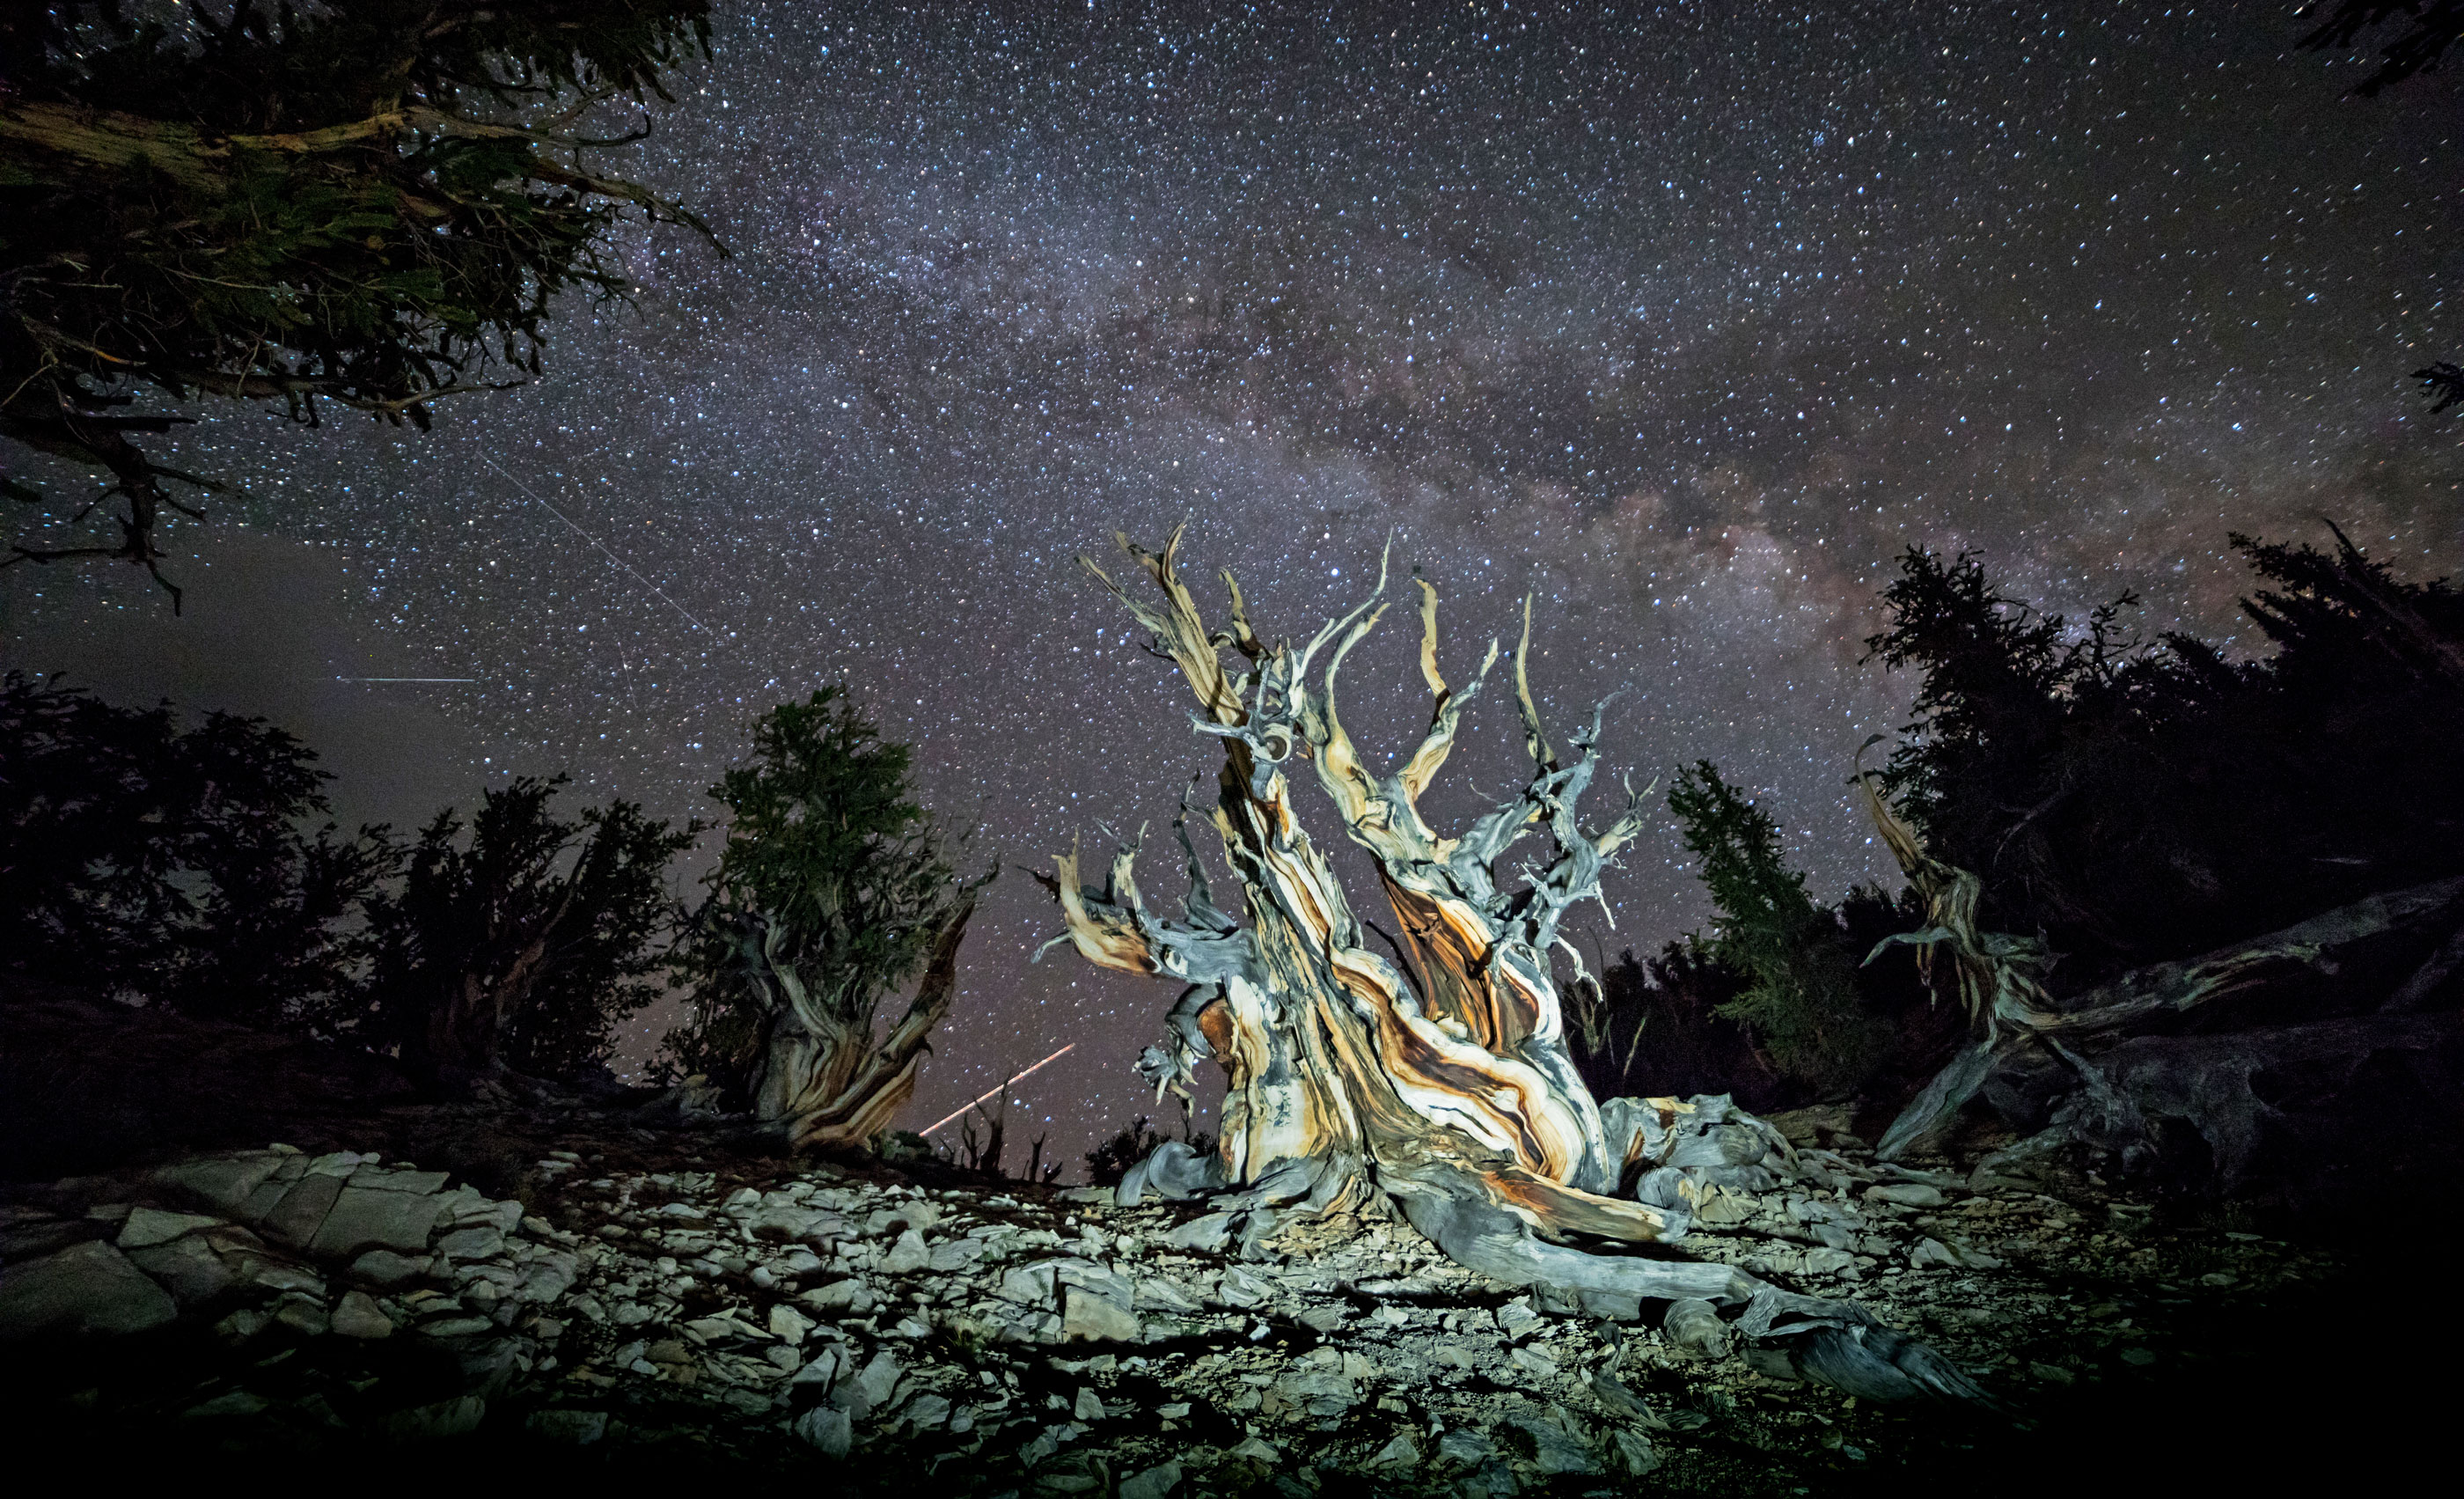 LightPainting-Gunnar-Heilmann_USA-California-tree-stars-Milkyway-Bristlecone-pine.jpg